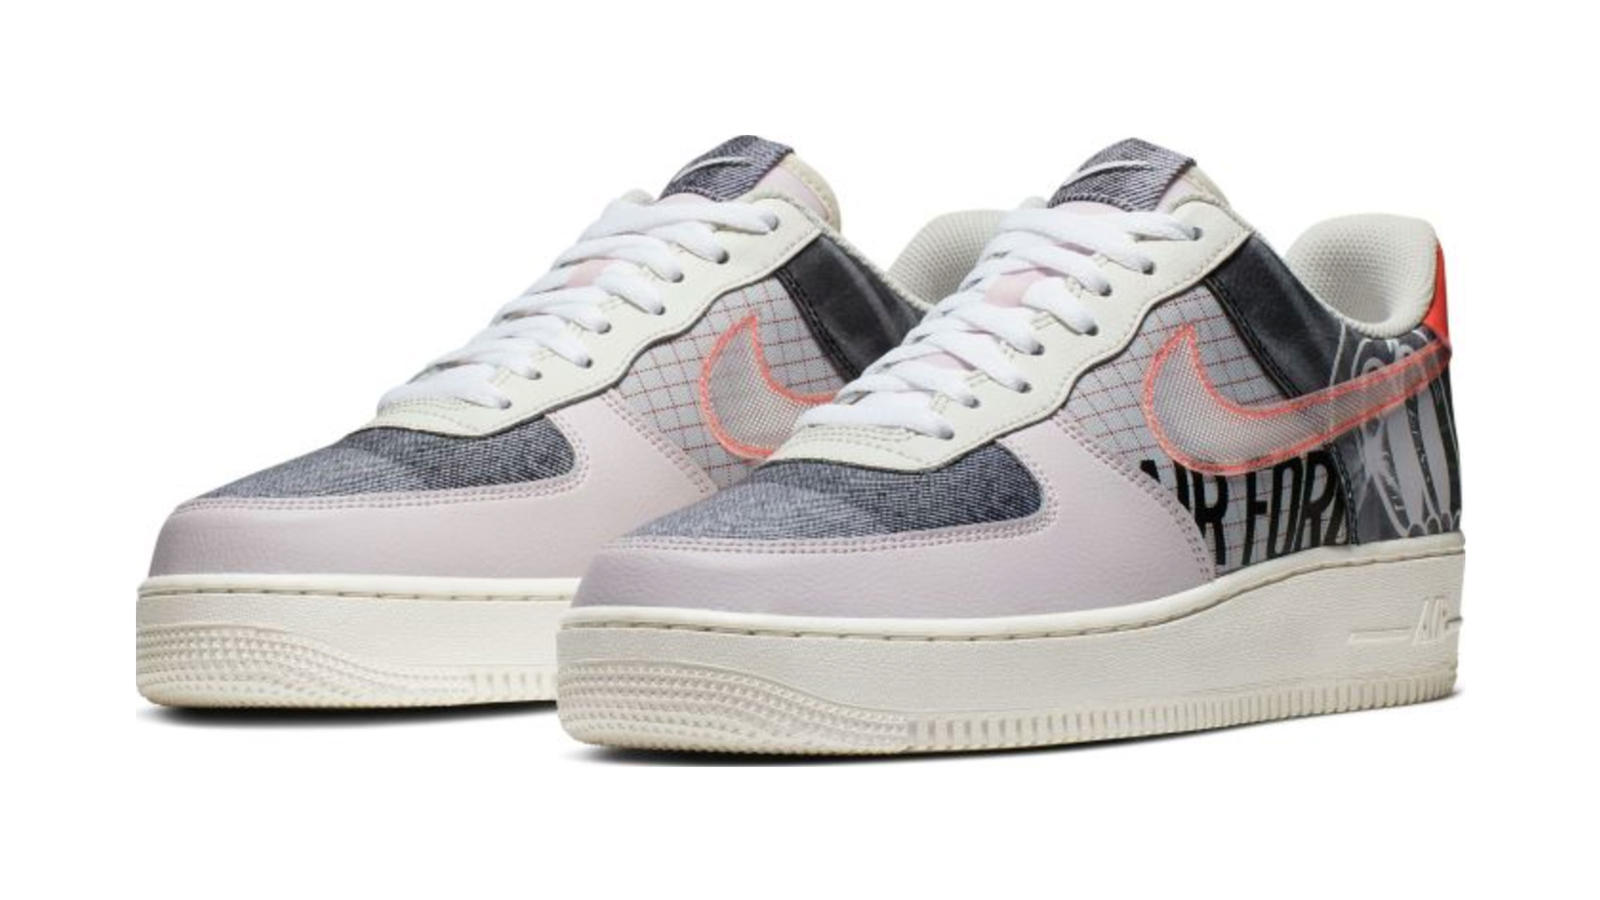 Nike Air Force 1 Zine Pack Official Images and Release Date 0